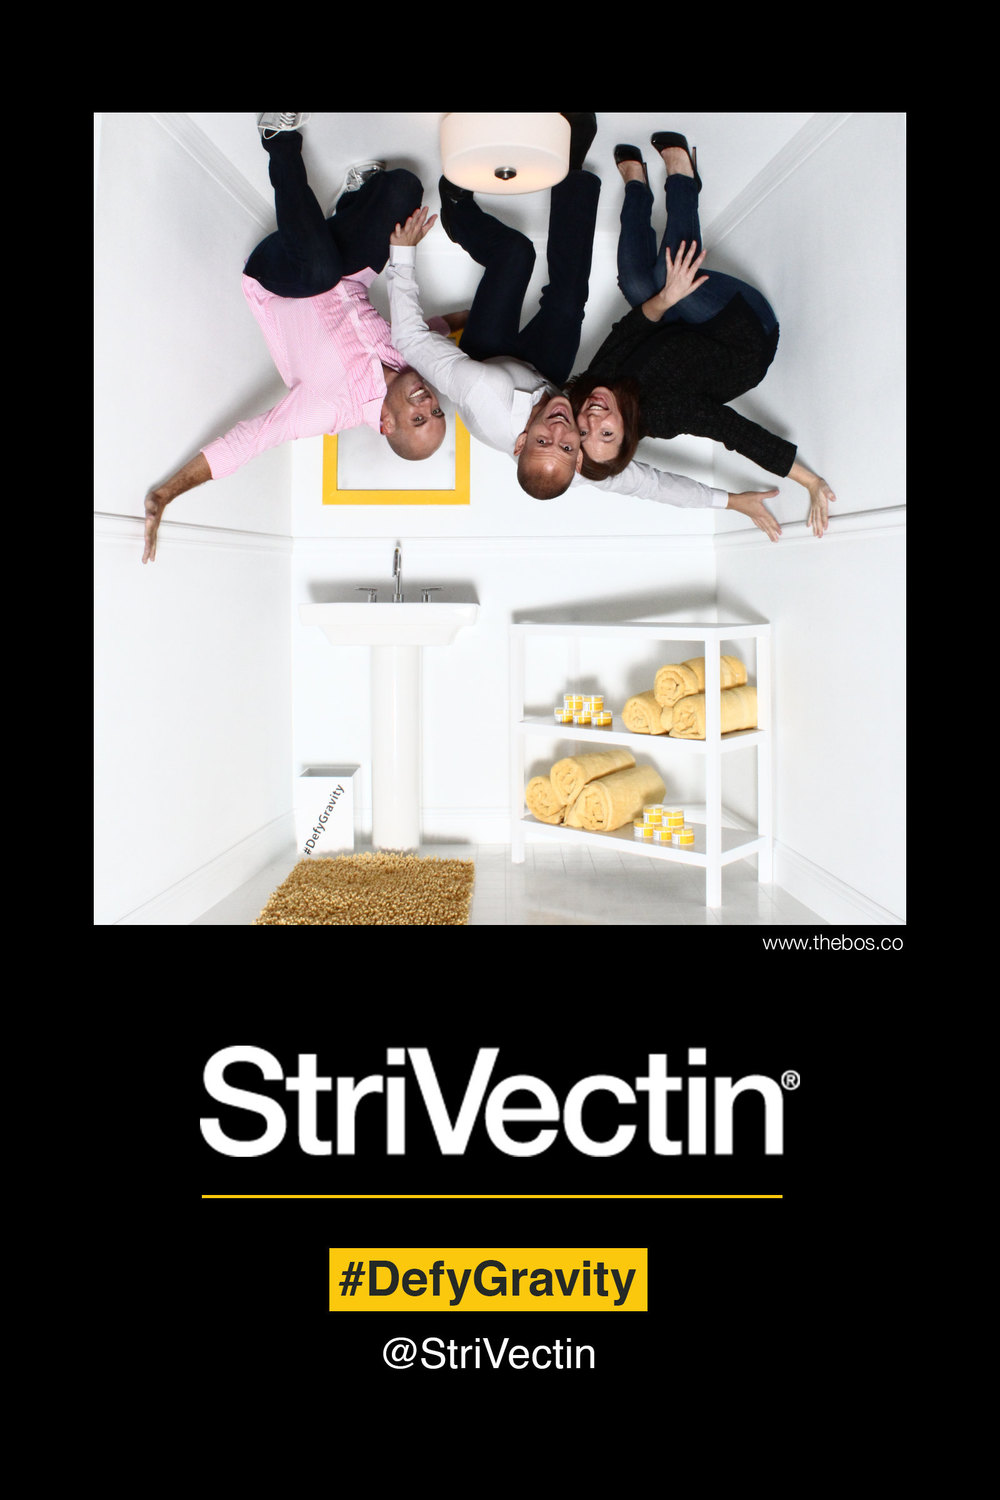 Photo Booth for Strivectin Event with Idina Menzel